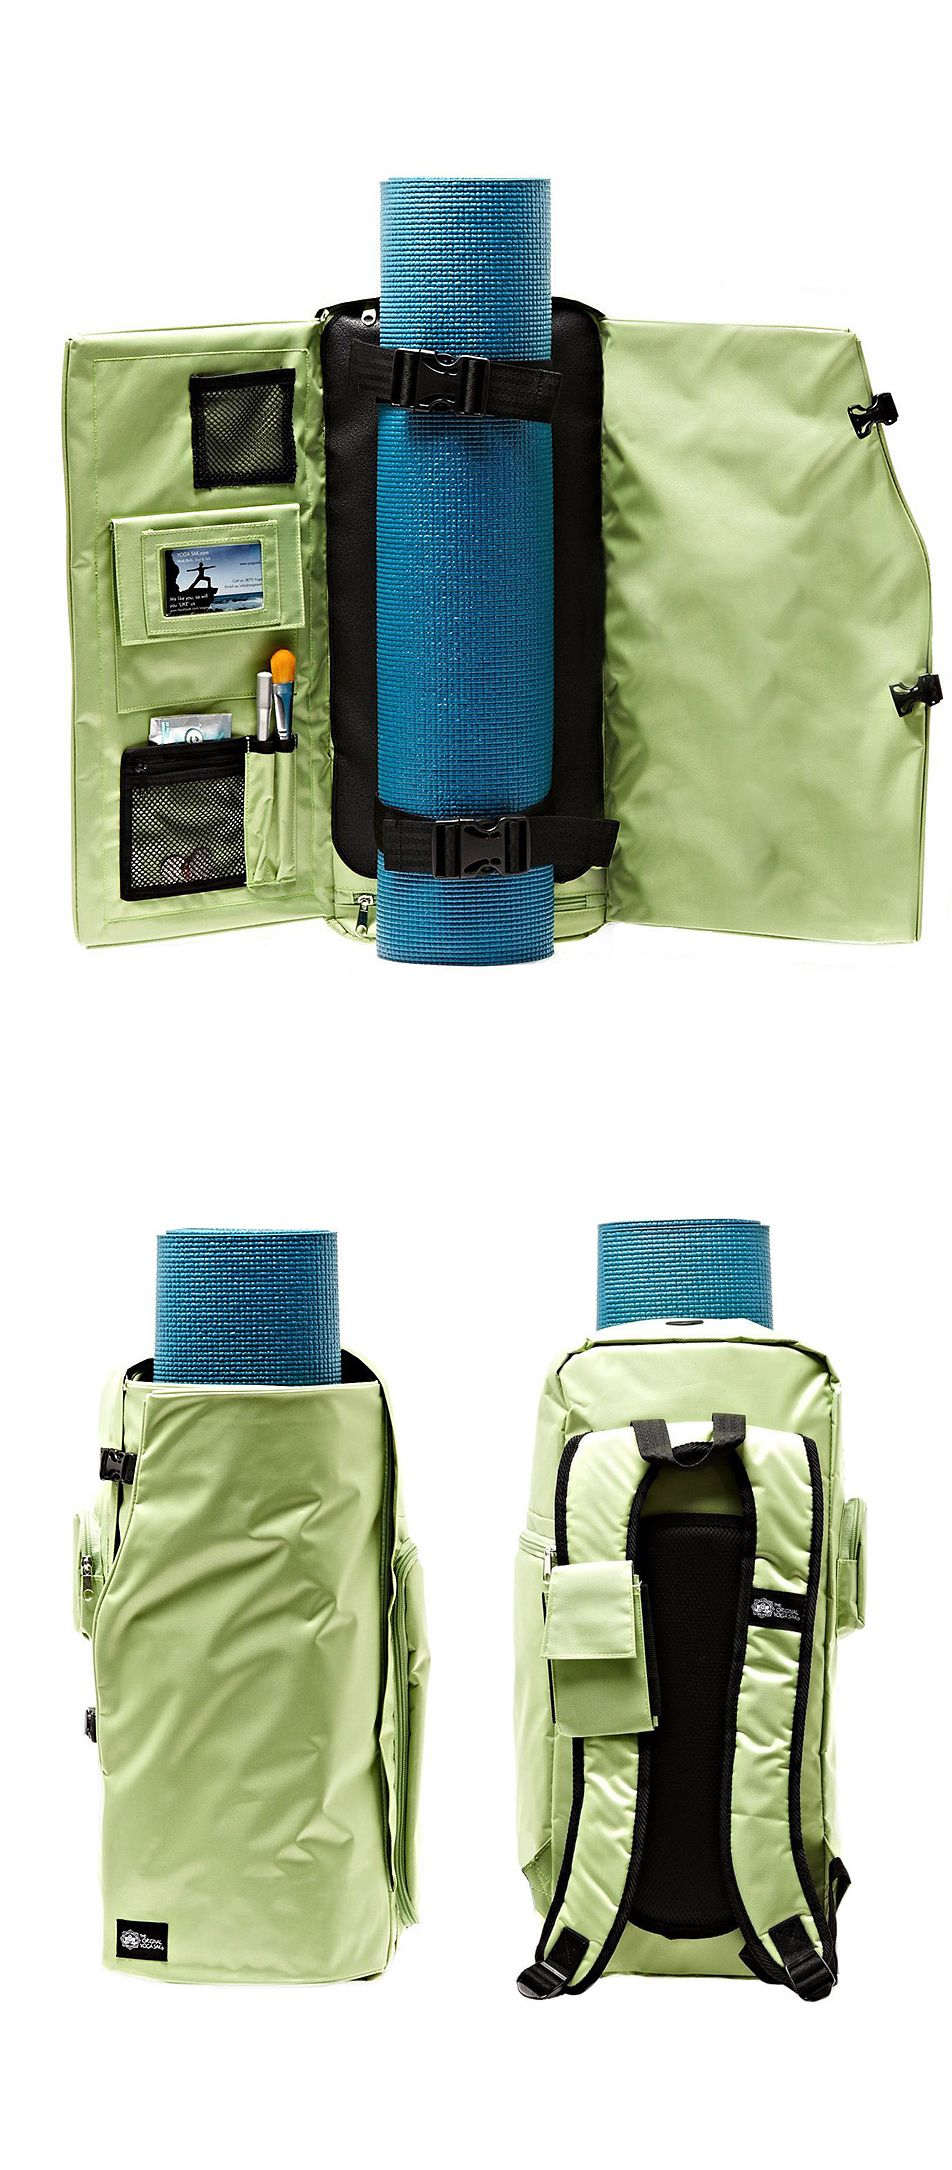 All In One Yoga Backpack Multiple Pockets To Hold All